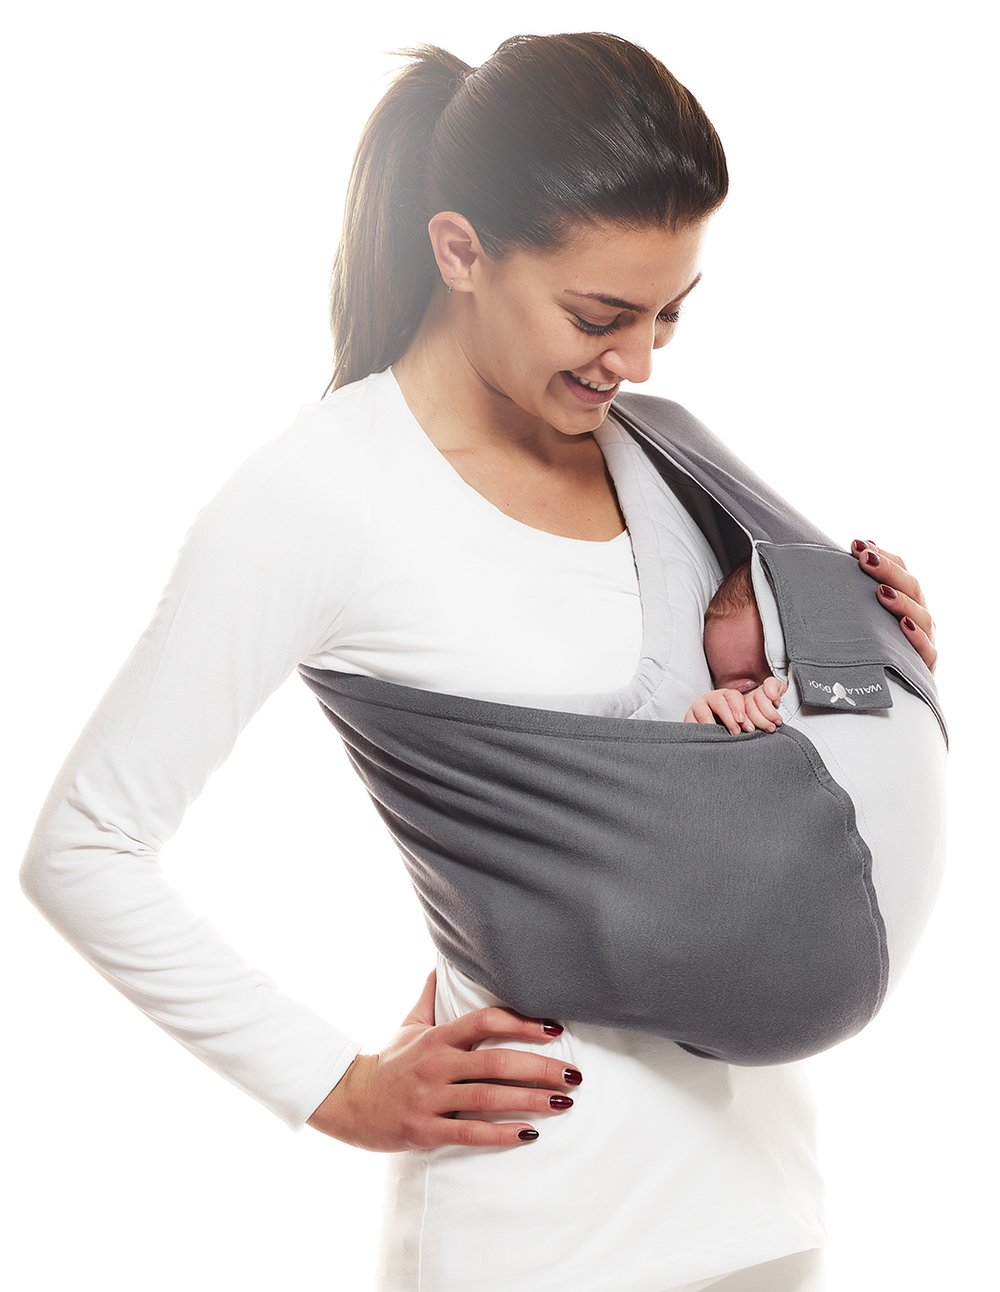 Wallaboo Wrap Sling Carrier Connection, Easy Adjustable, Ergonomic, 3 Carrying Positions, Newborn 8lbs to 33 lbs, Soft Breathable Cotton, 3 Sitting Positions, EU Safety Tested, Color: Grey / Silver Wallaboo Ergonomically correct design with three natural positions: sleep, sit and active- one size fits all Can be used from premature baby through to 33lbs - with easy-to-use features like a full-front opening and an adjustable back Single piece of fabric, no straps, belts or buckles - partly padded to give extra comfort- no wrapping, no hardware. ready to wear 7